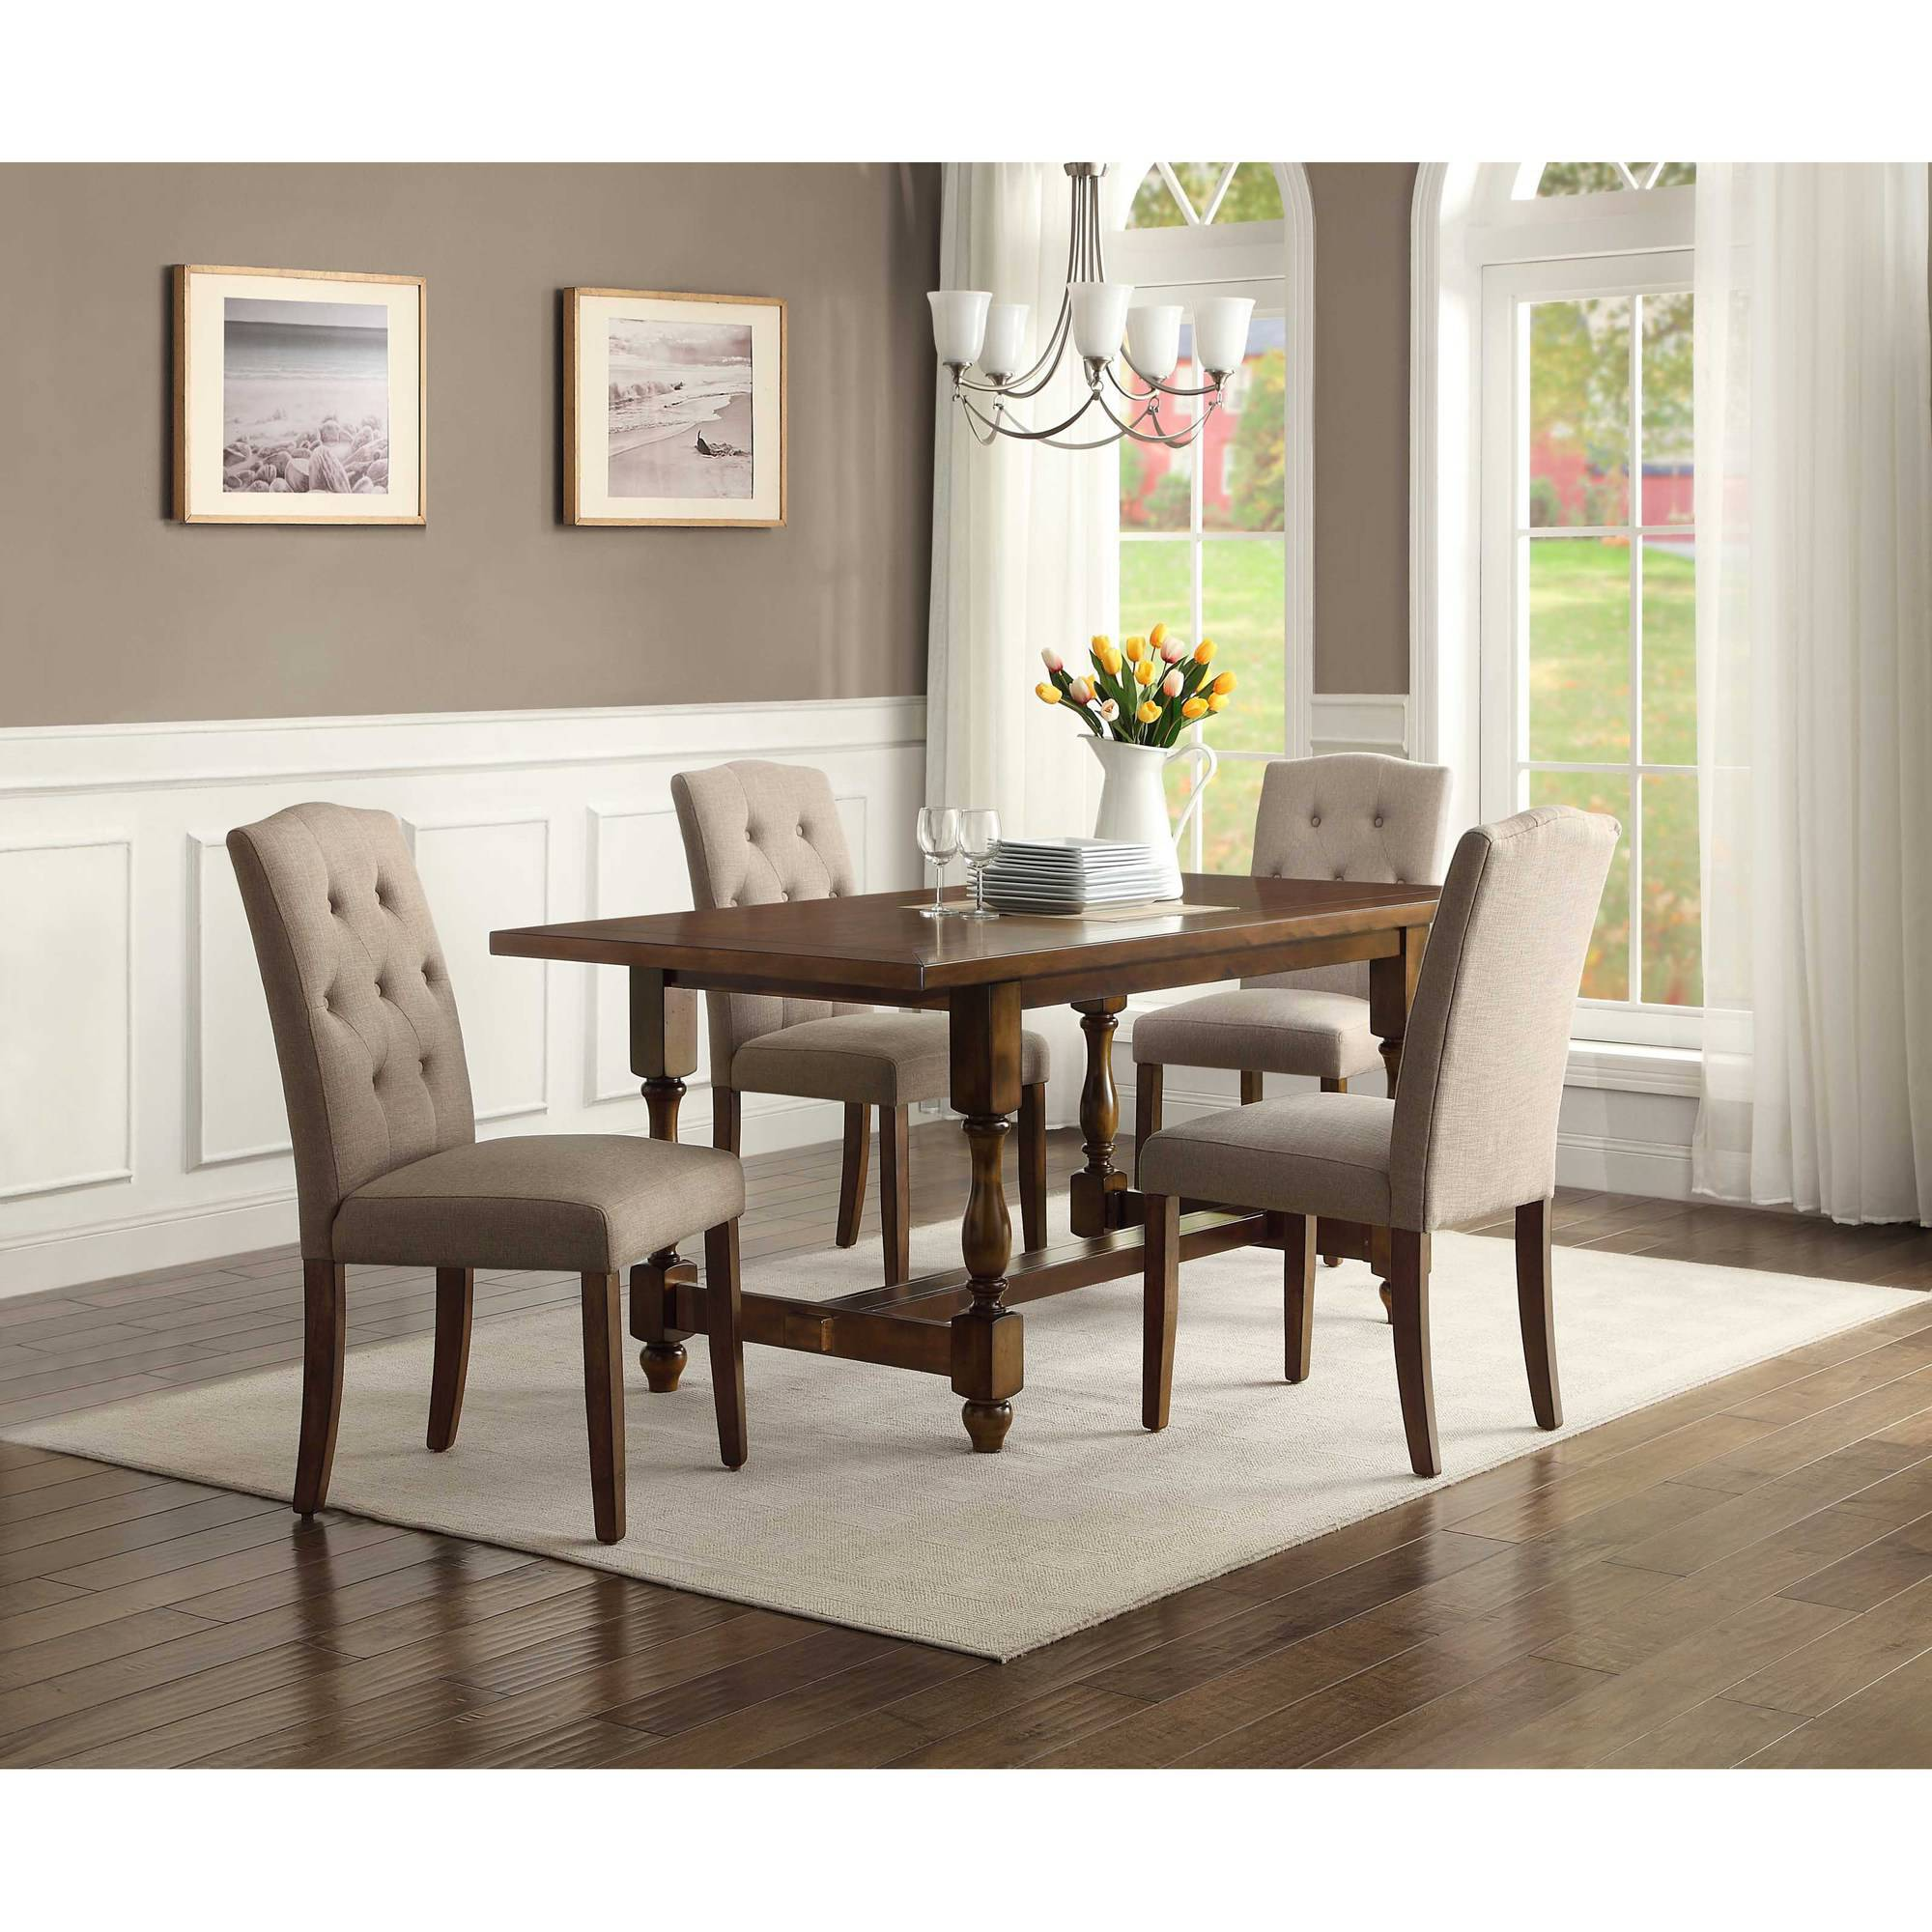 Better Homes And Gardens Cedar Crest Aluminum Marble 5pc Dining Set